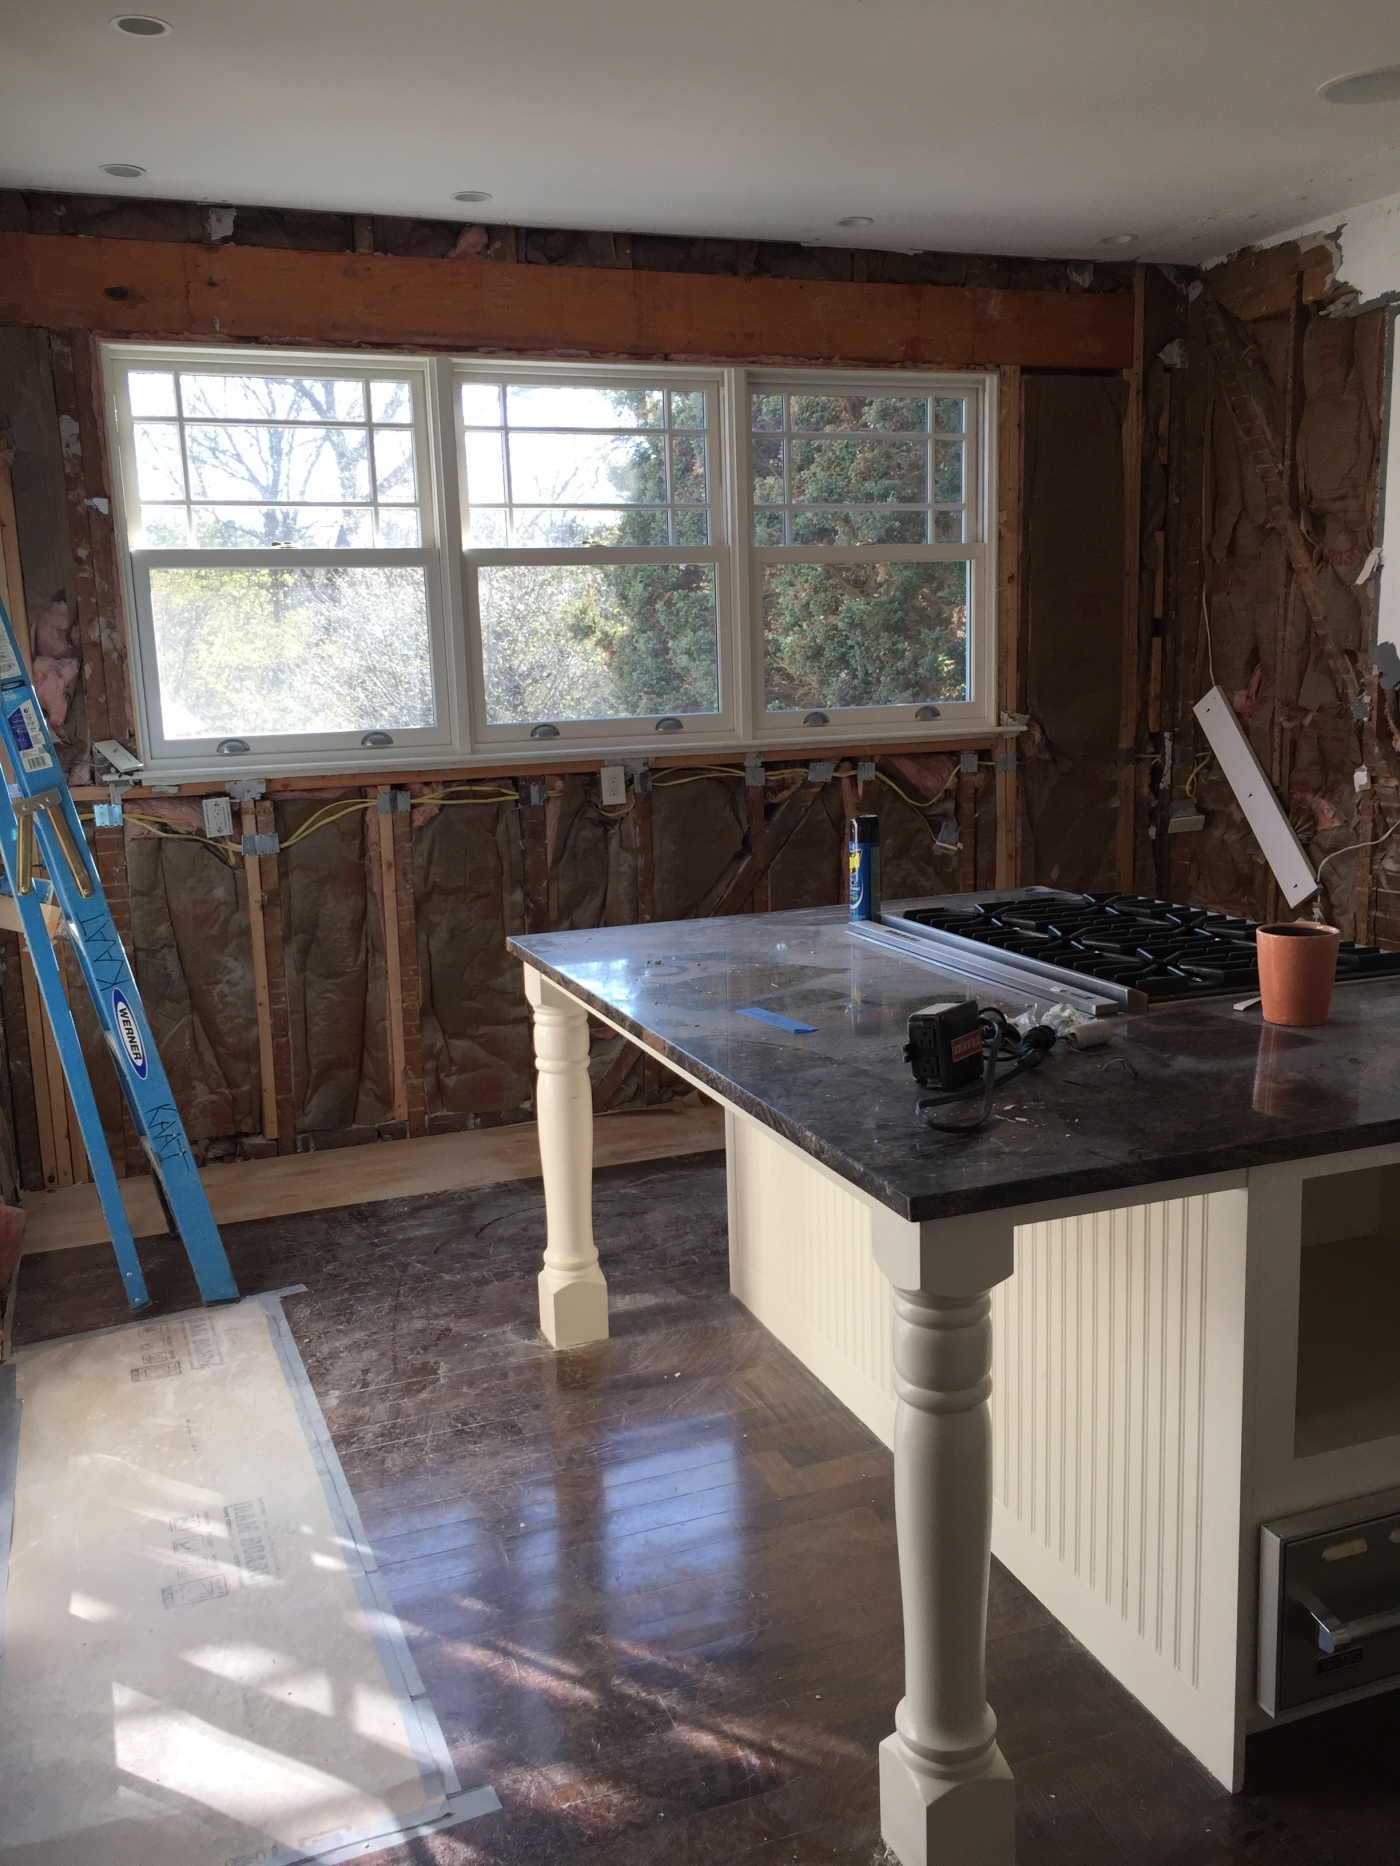 Day 1: Project 1896 (Our Home Renovation) | Interiors for Families | Kelly Rogers Interiors